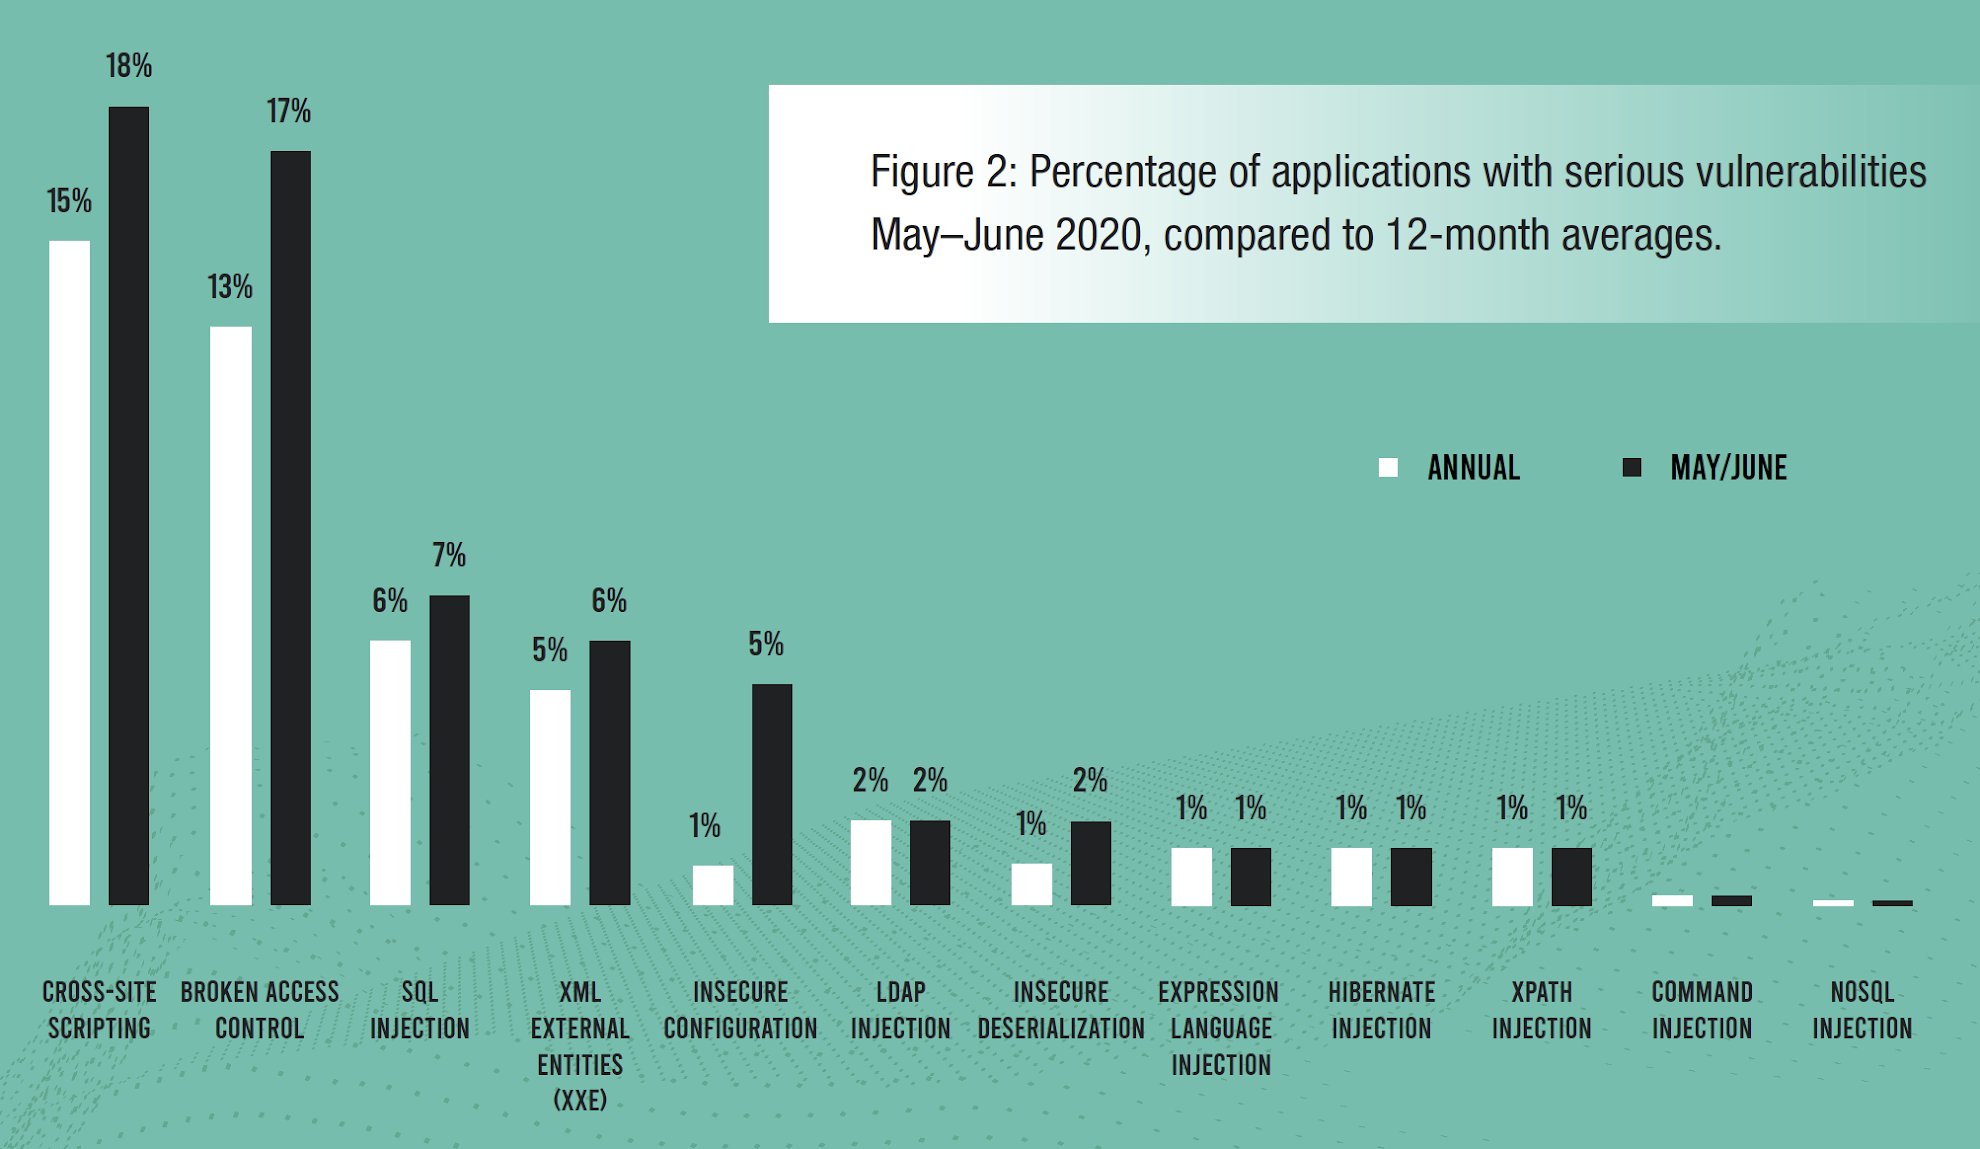 Figure 2: Percentage of applications with serious vulnerabilities May–June 2020, compared to 12-month averages.